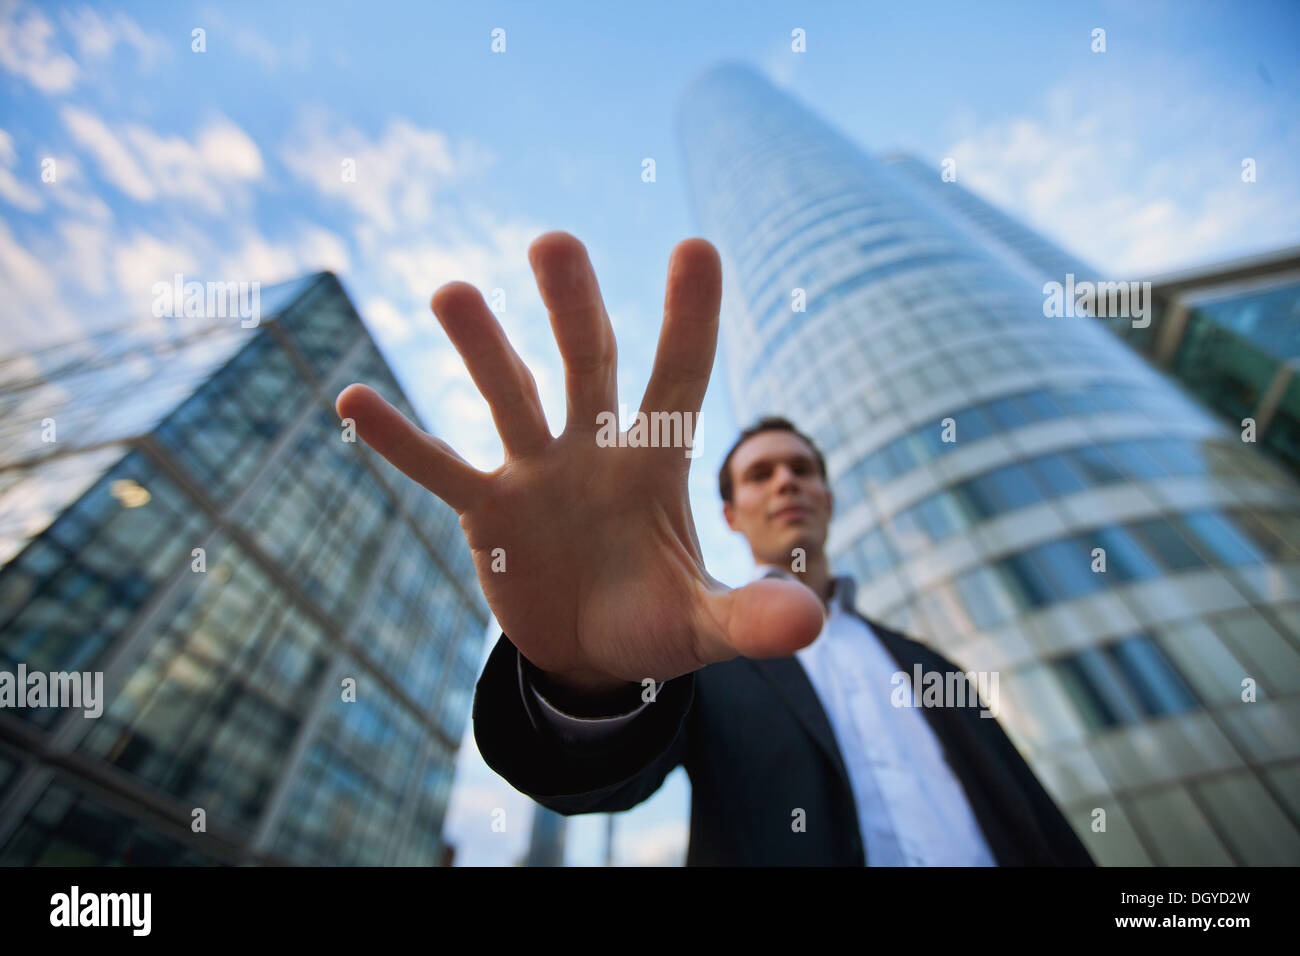 threat in business, steal money - Stock Image